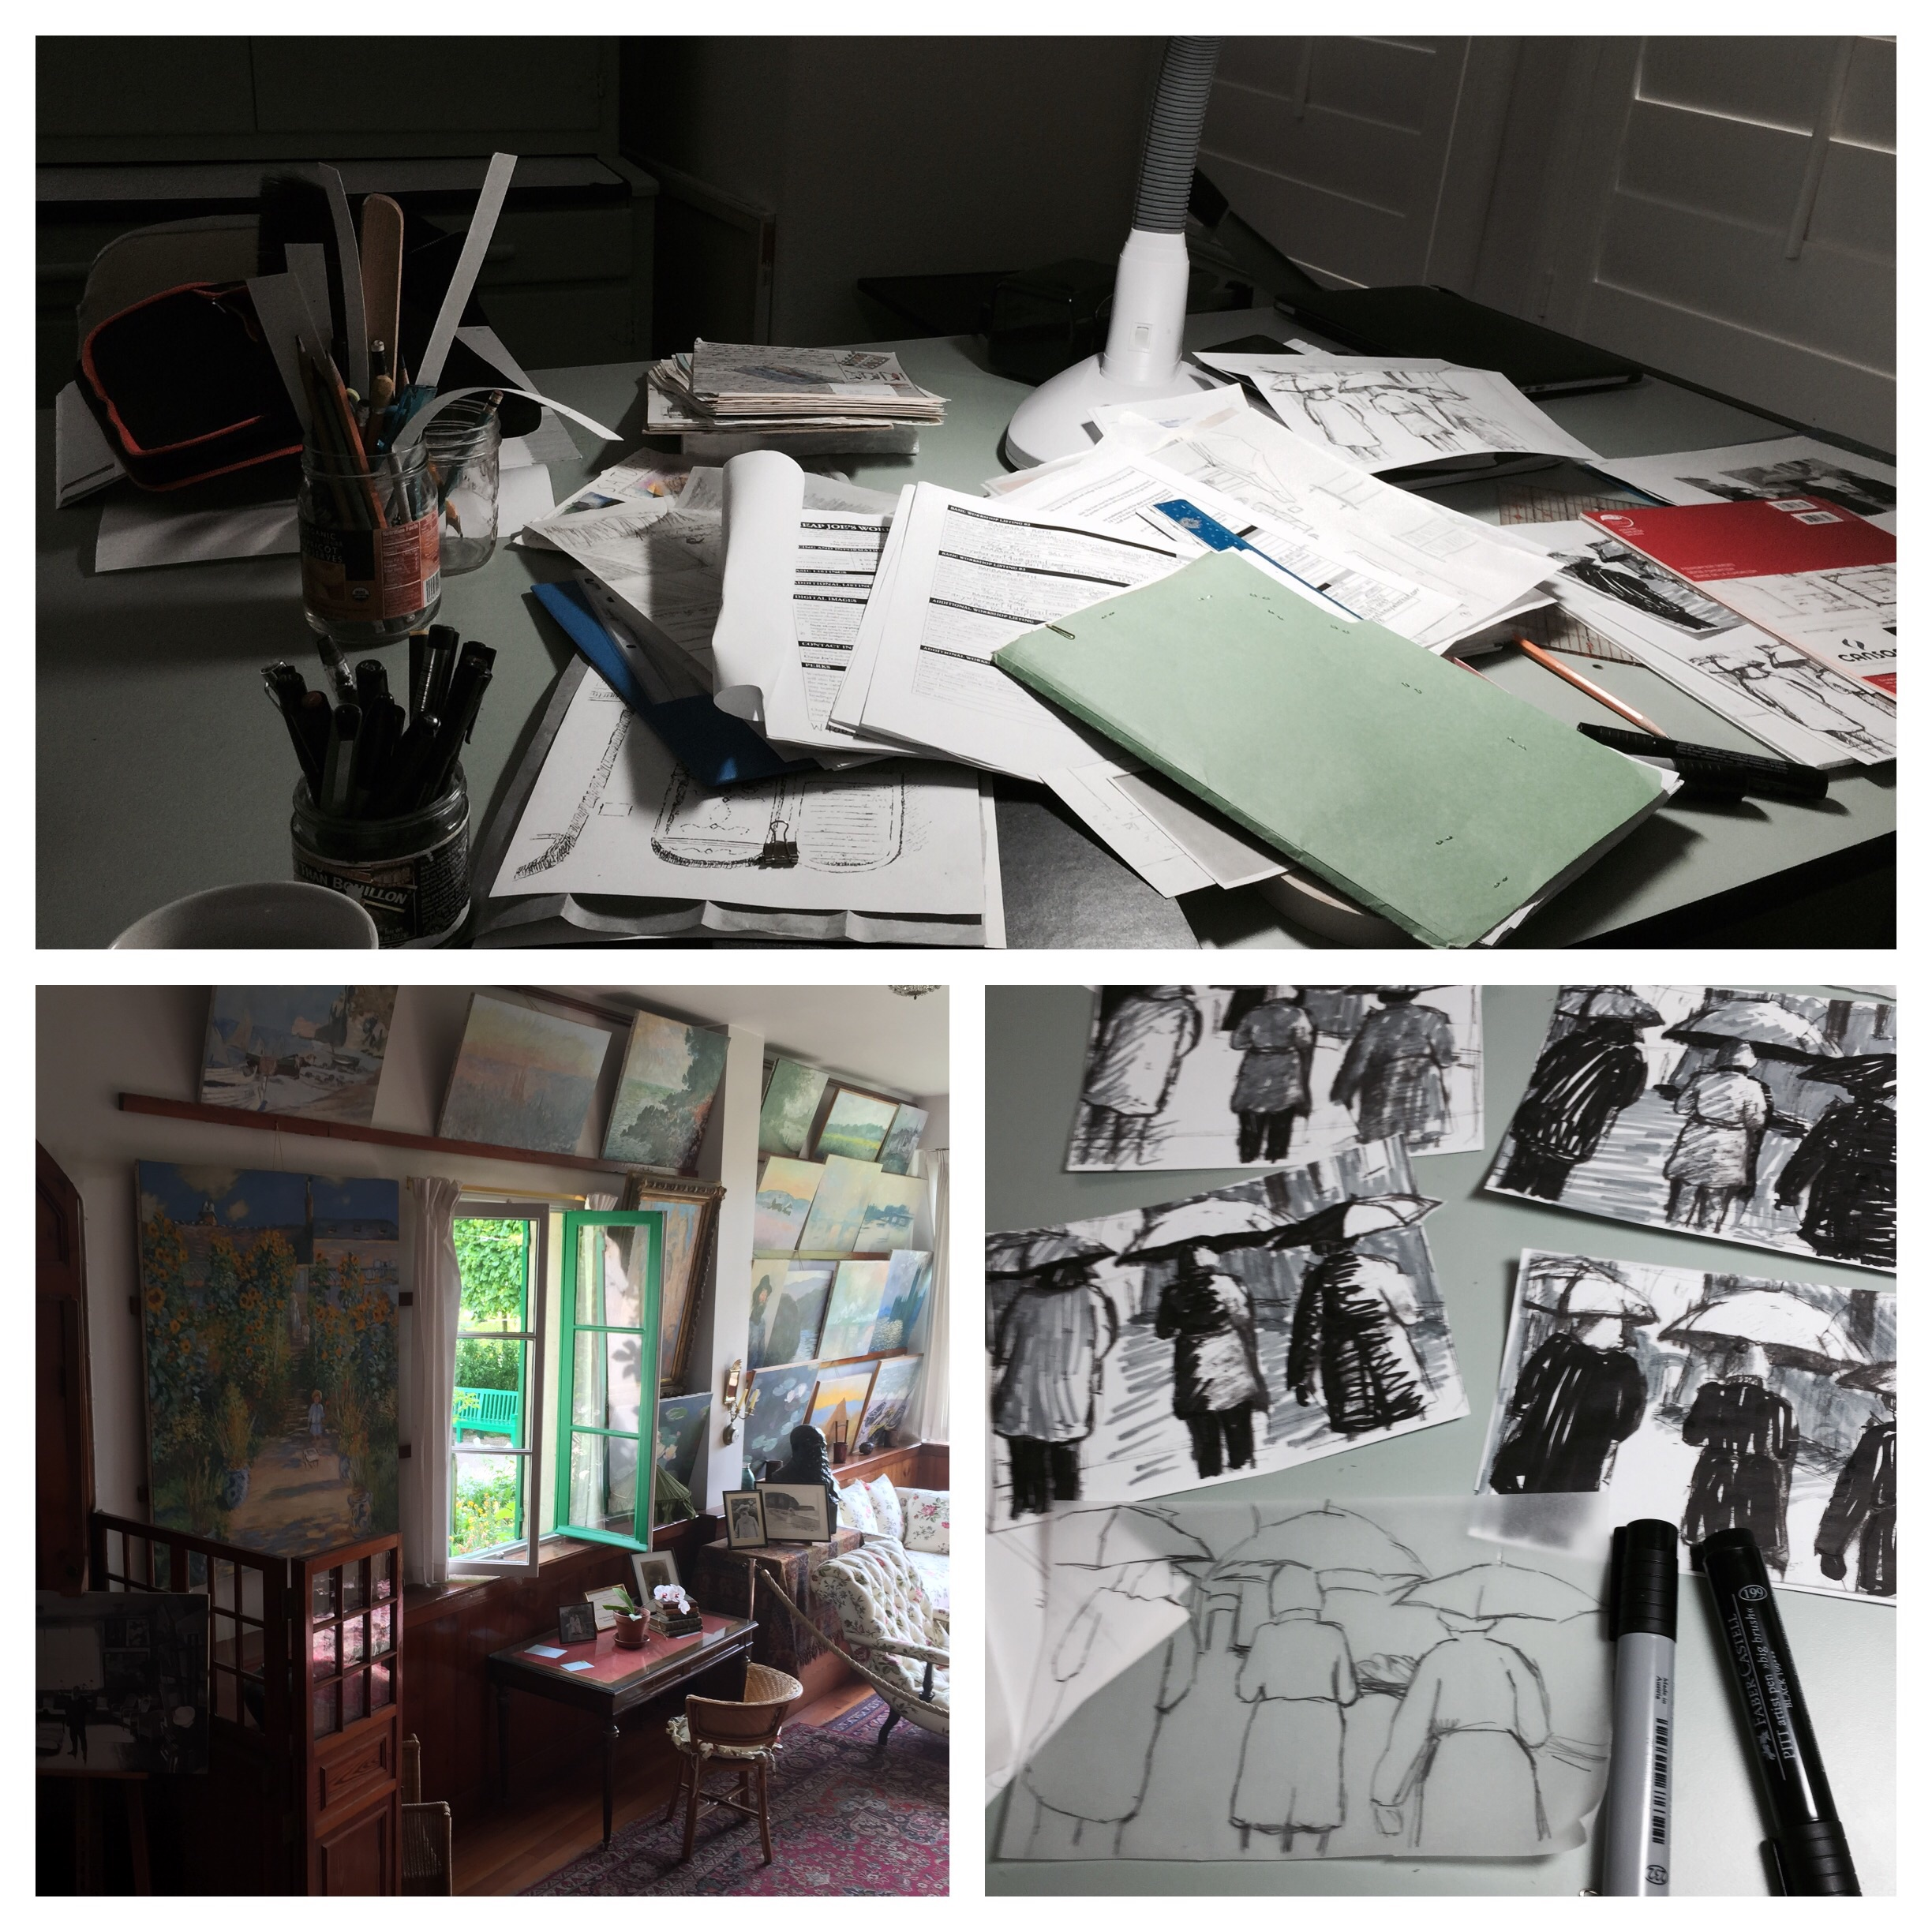 Top: my desk this morning. Bottom left: Claude Monet's desk in his studio in Giverny, France, he must have cleaned it up recently. Bottom right: my current project value sketches.